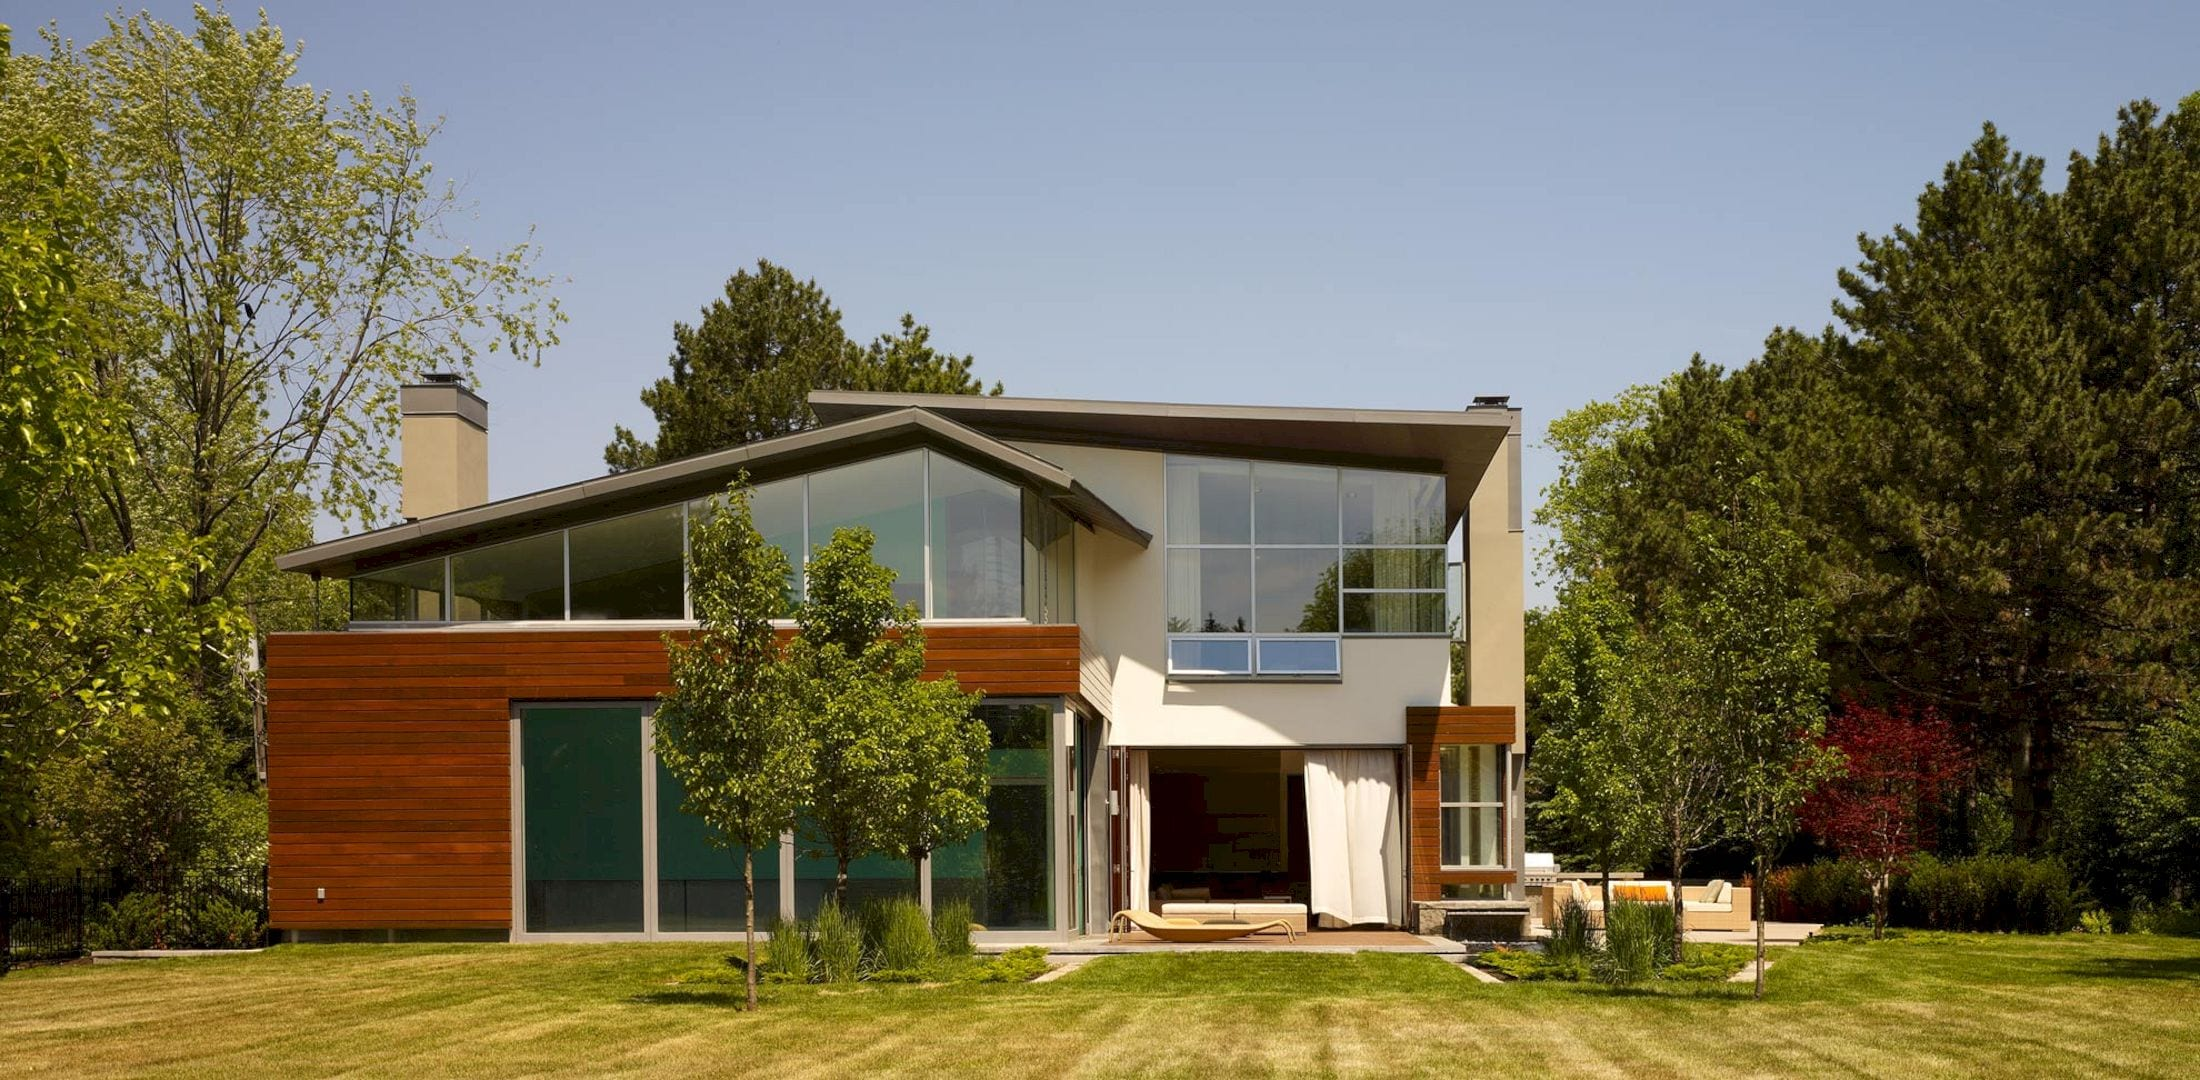 Davis Residence By Abramson Architects 9